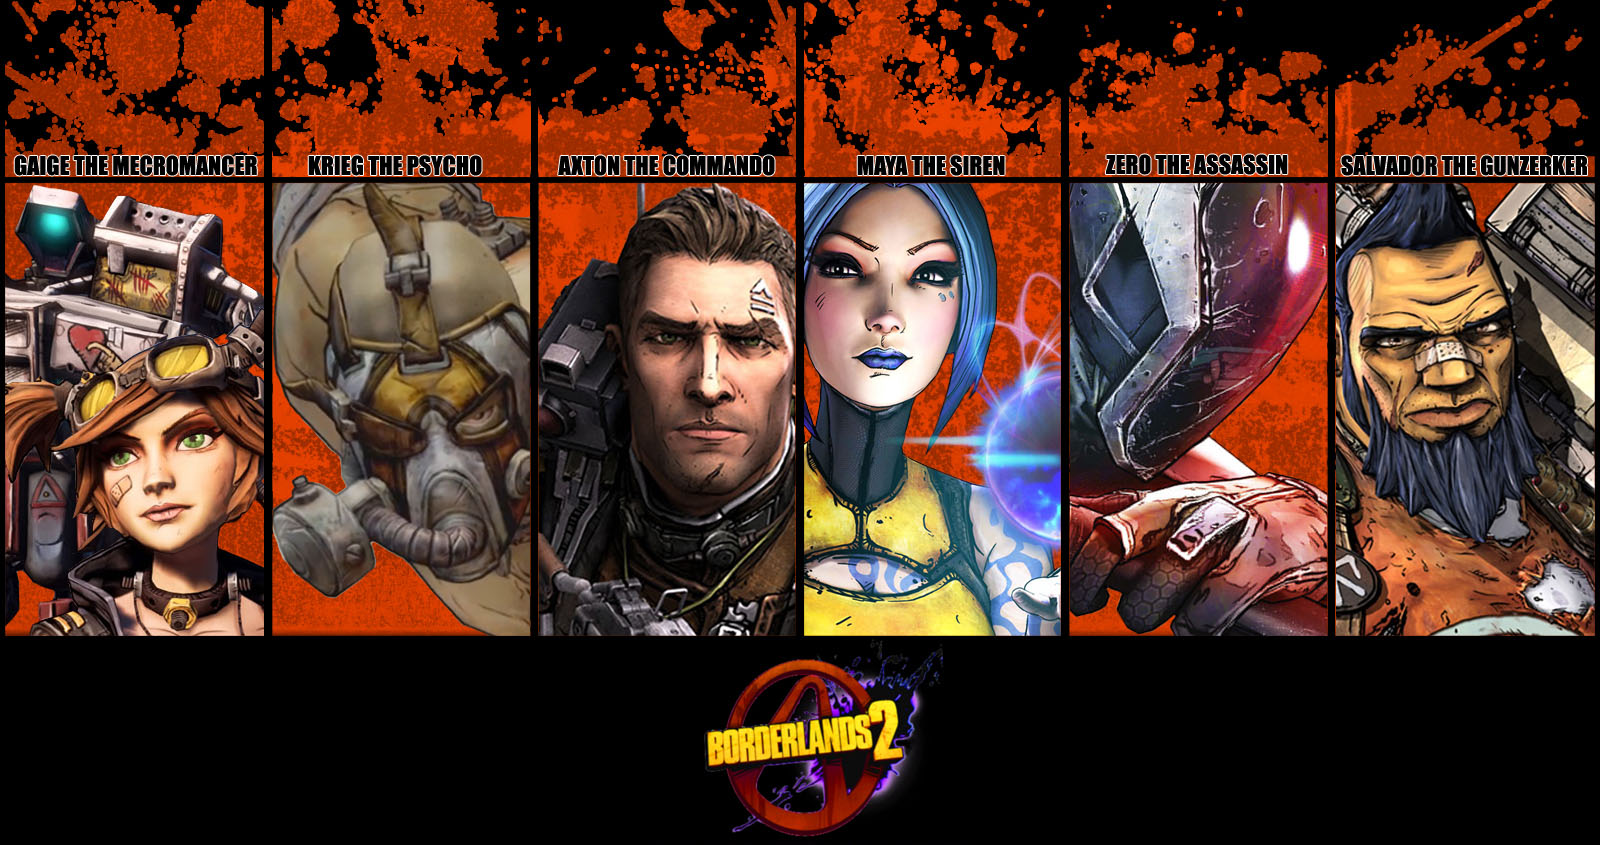 Borderlands 2 Class Wallpaper: Game Reviews: Borderlands 2 Classes Review